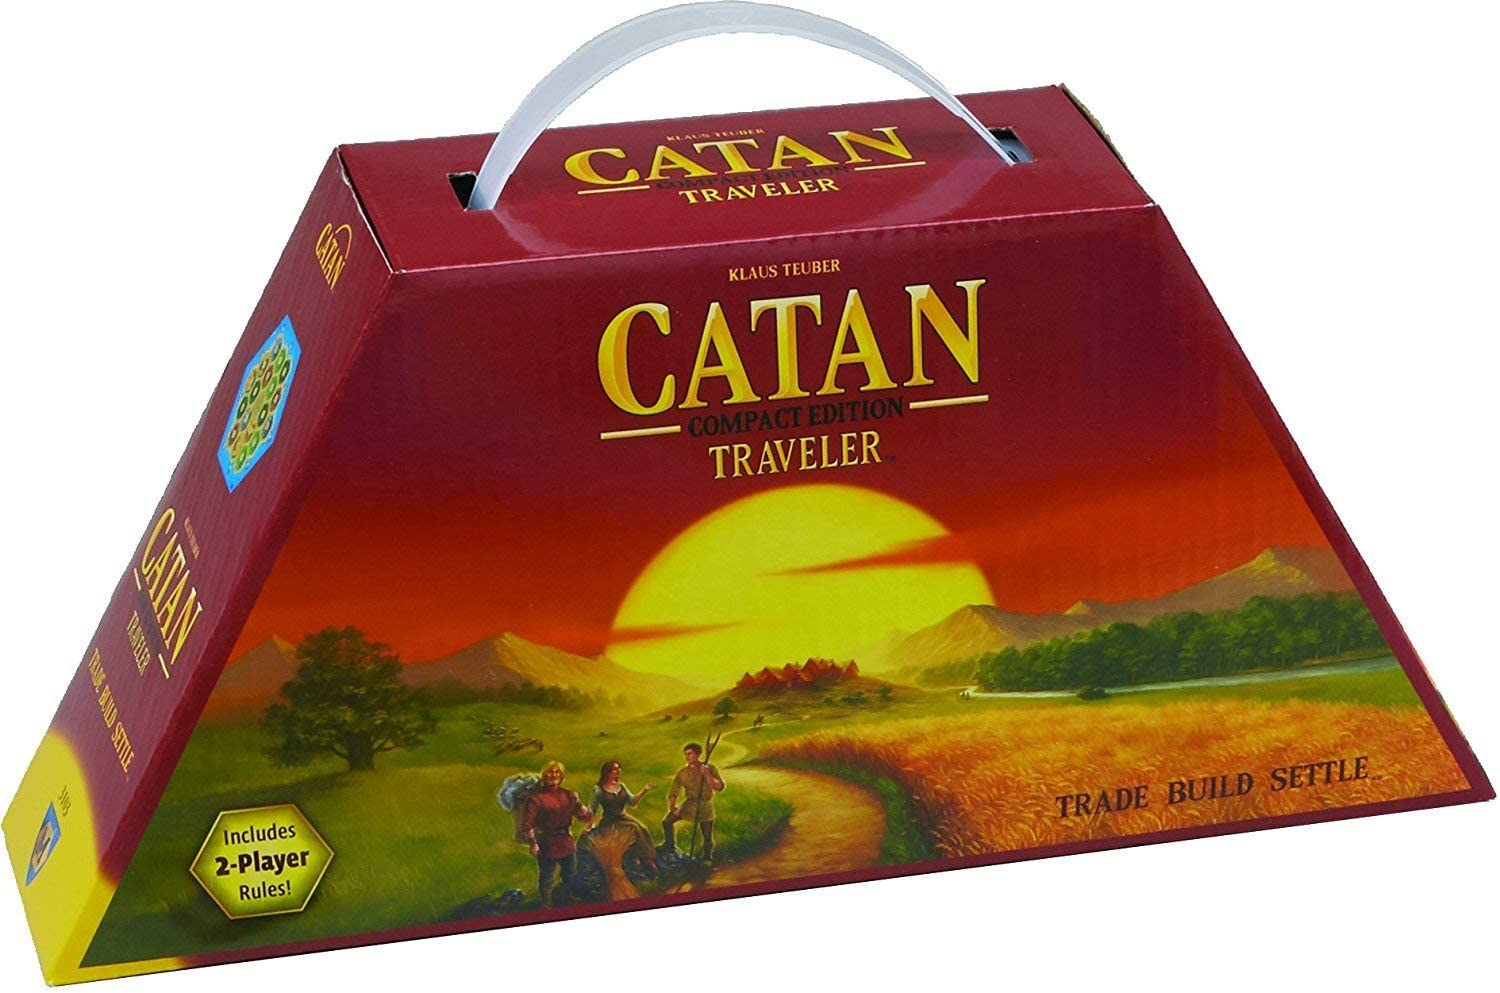 Catan Travel Edition